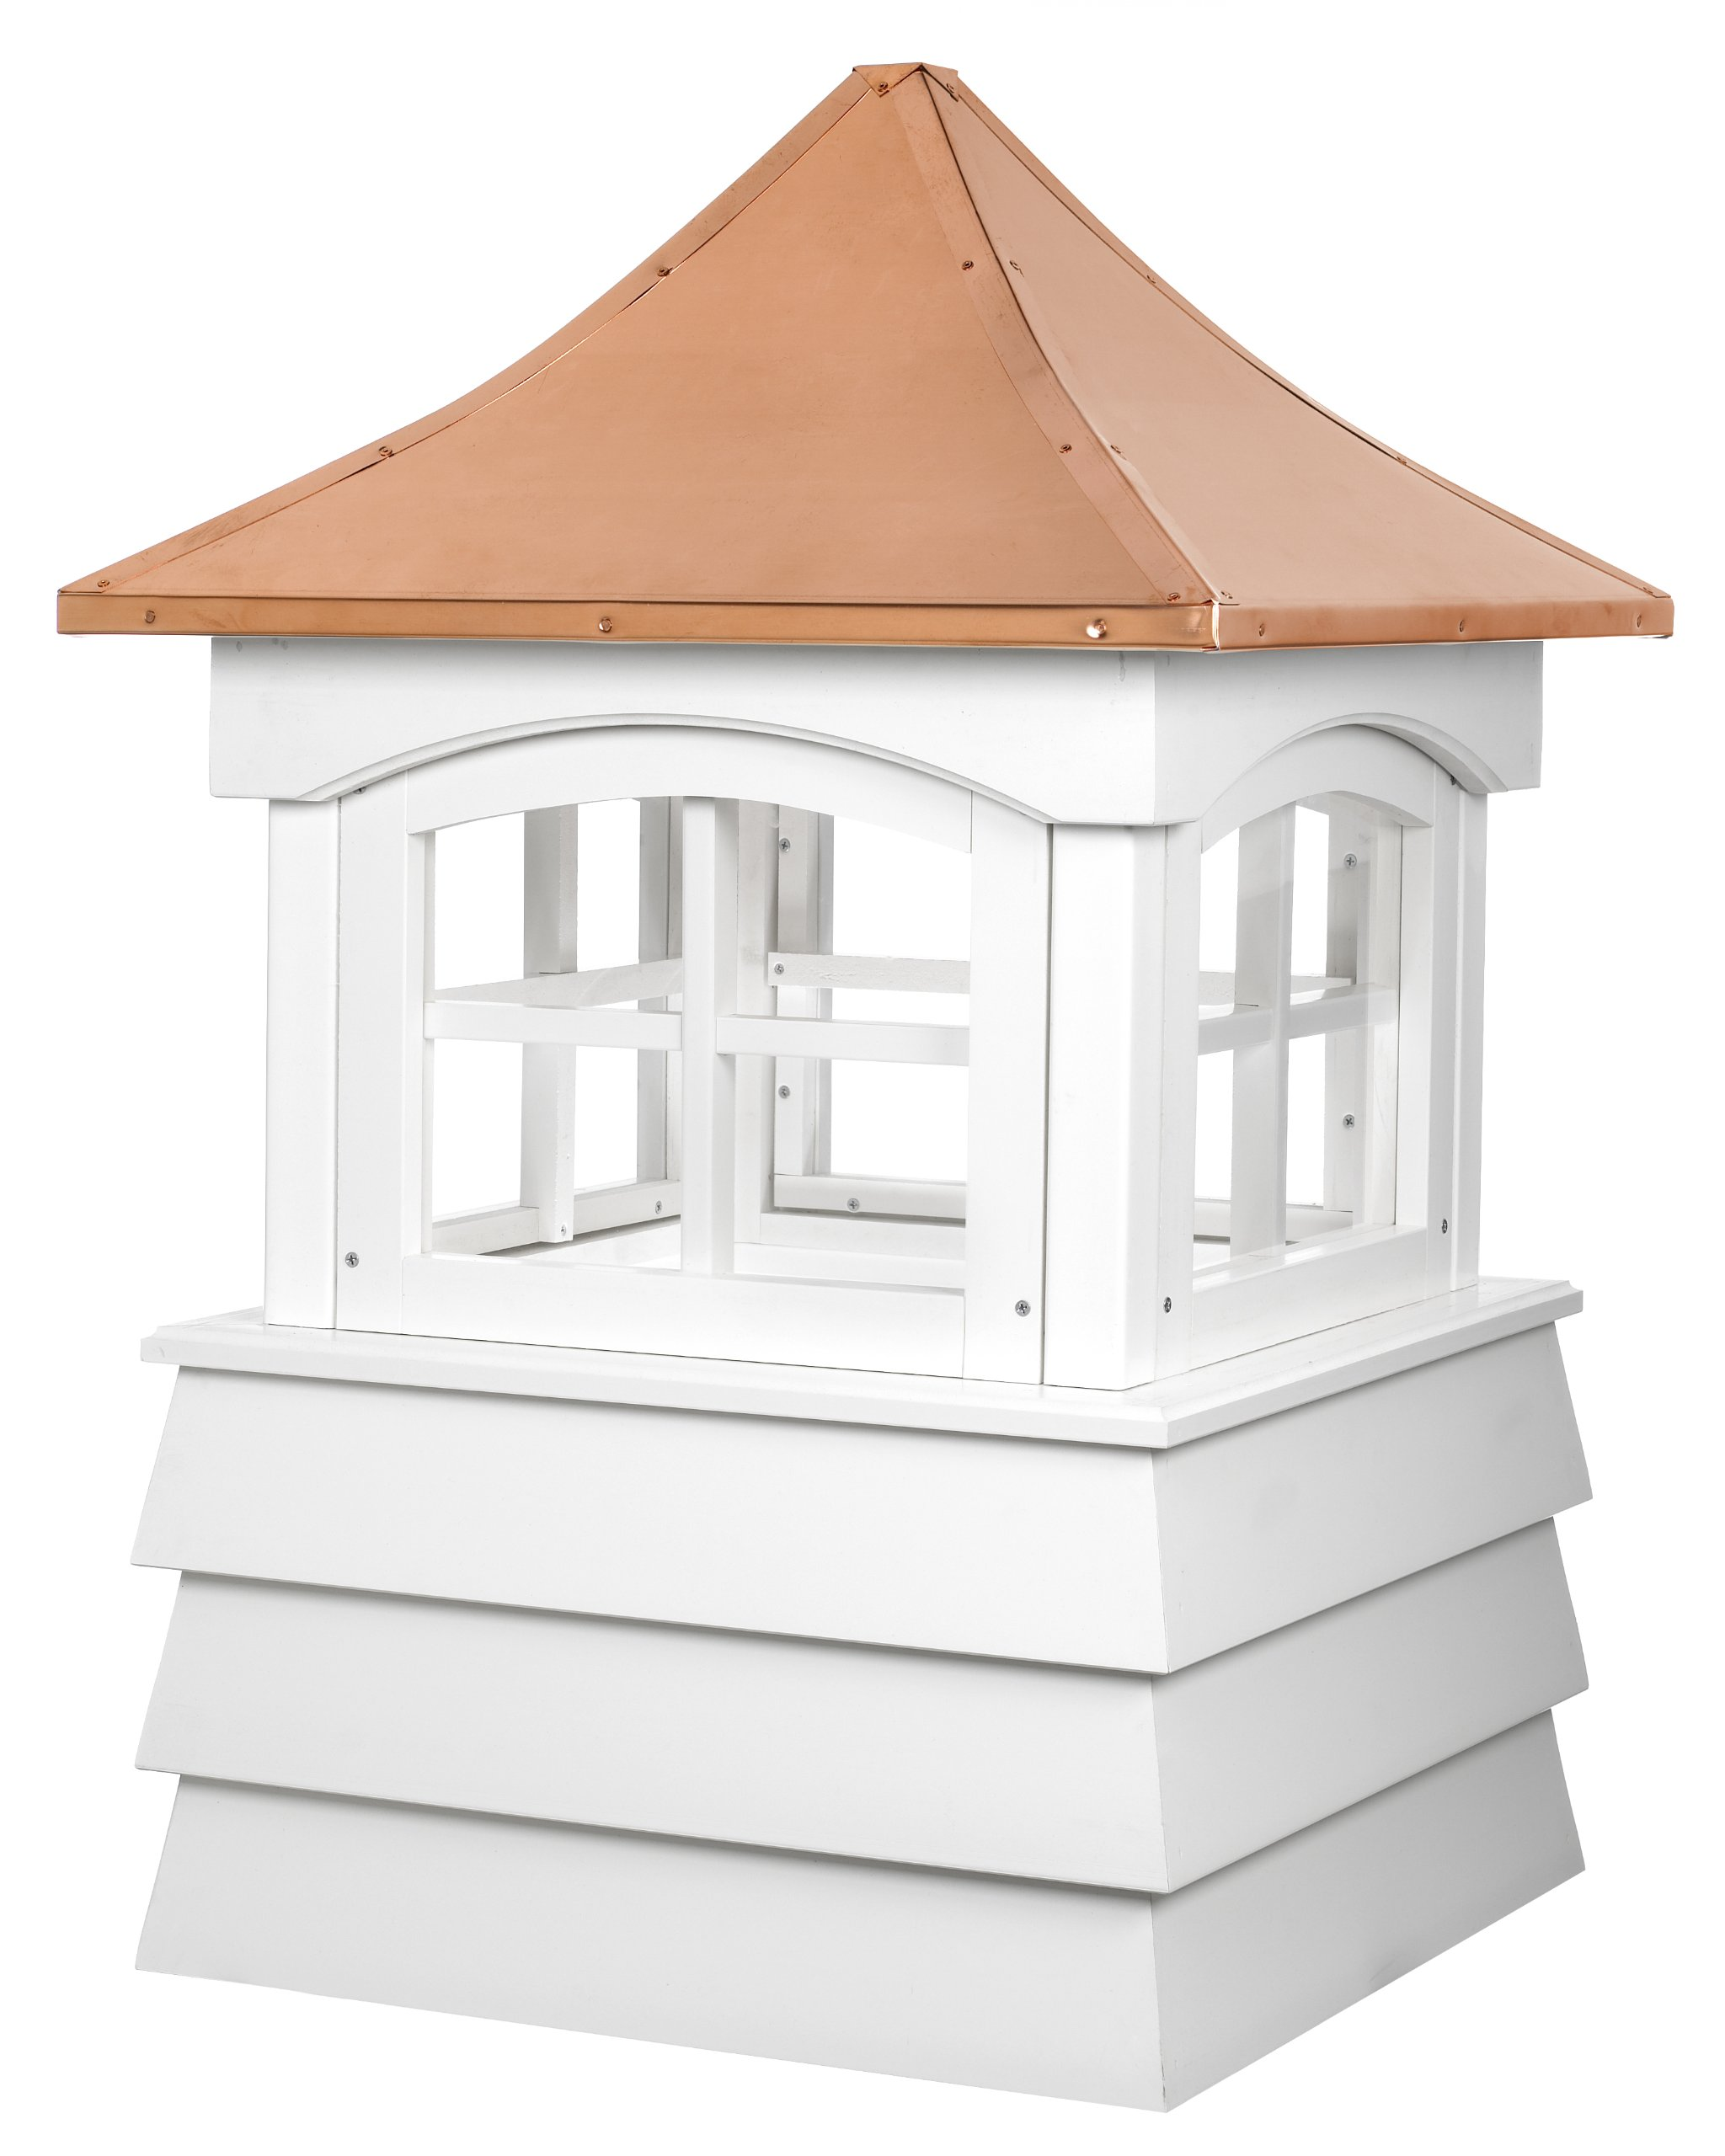 Good Directions Guilford Vinyl Cupola with Copper Roof, 26'' x 41'' by Good Directions